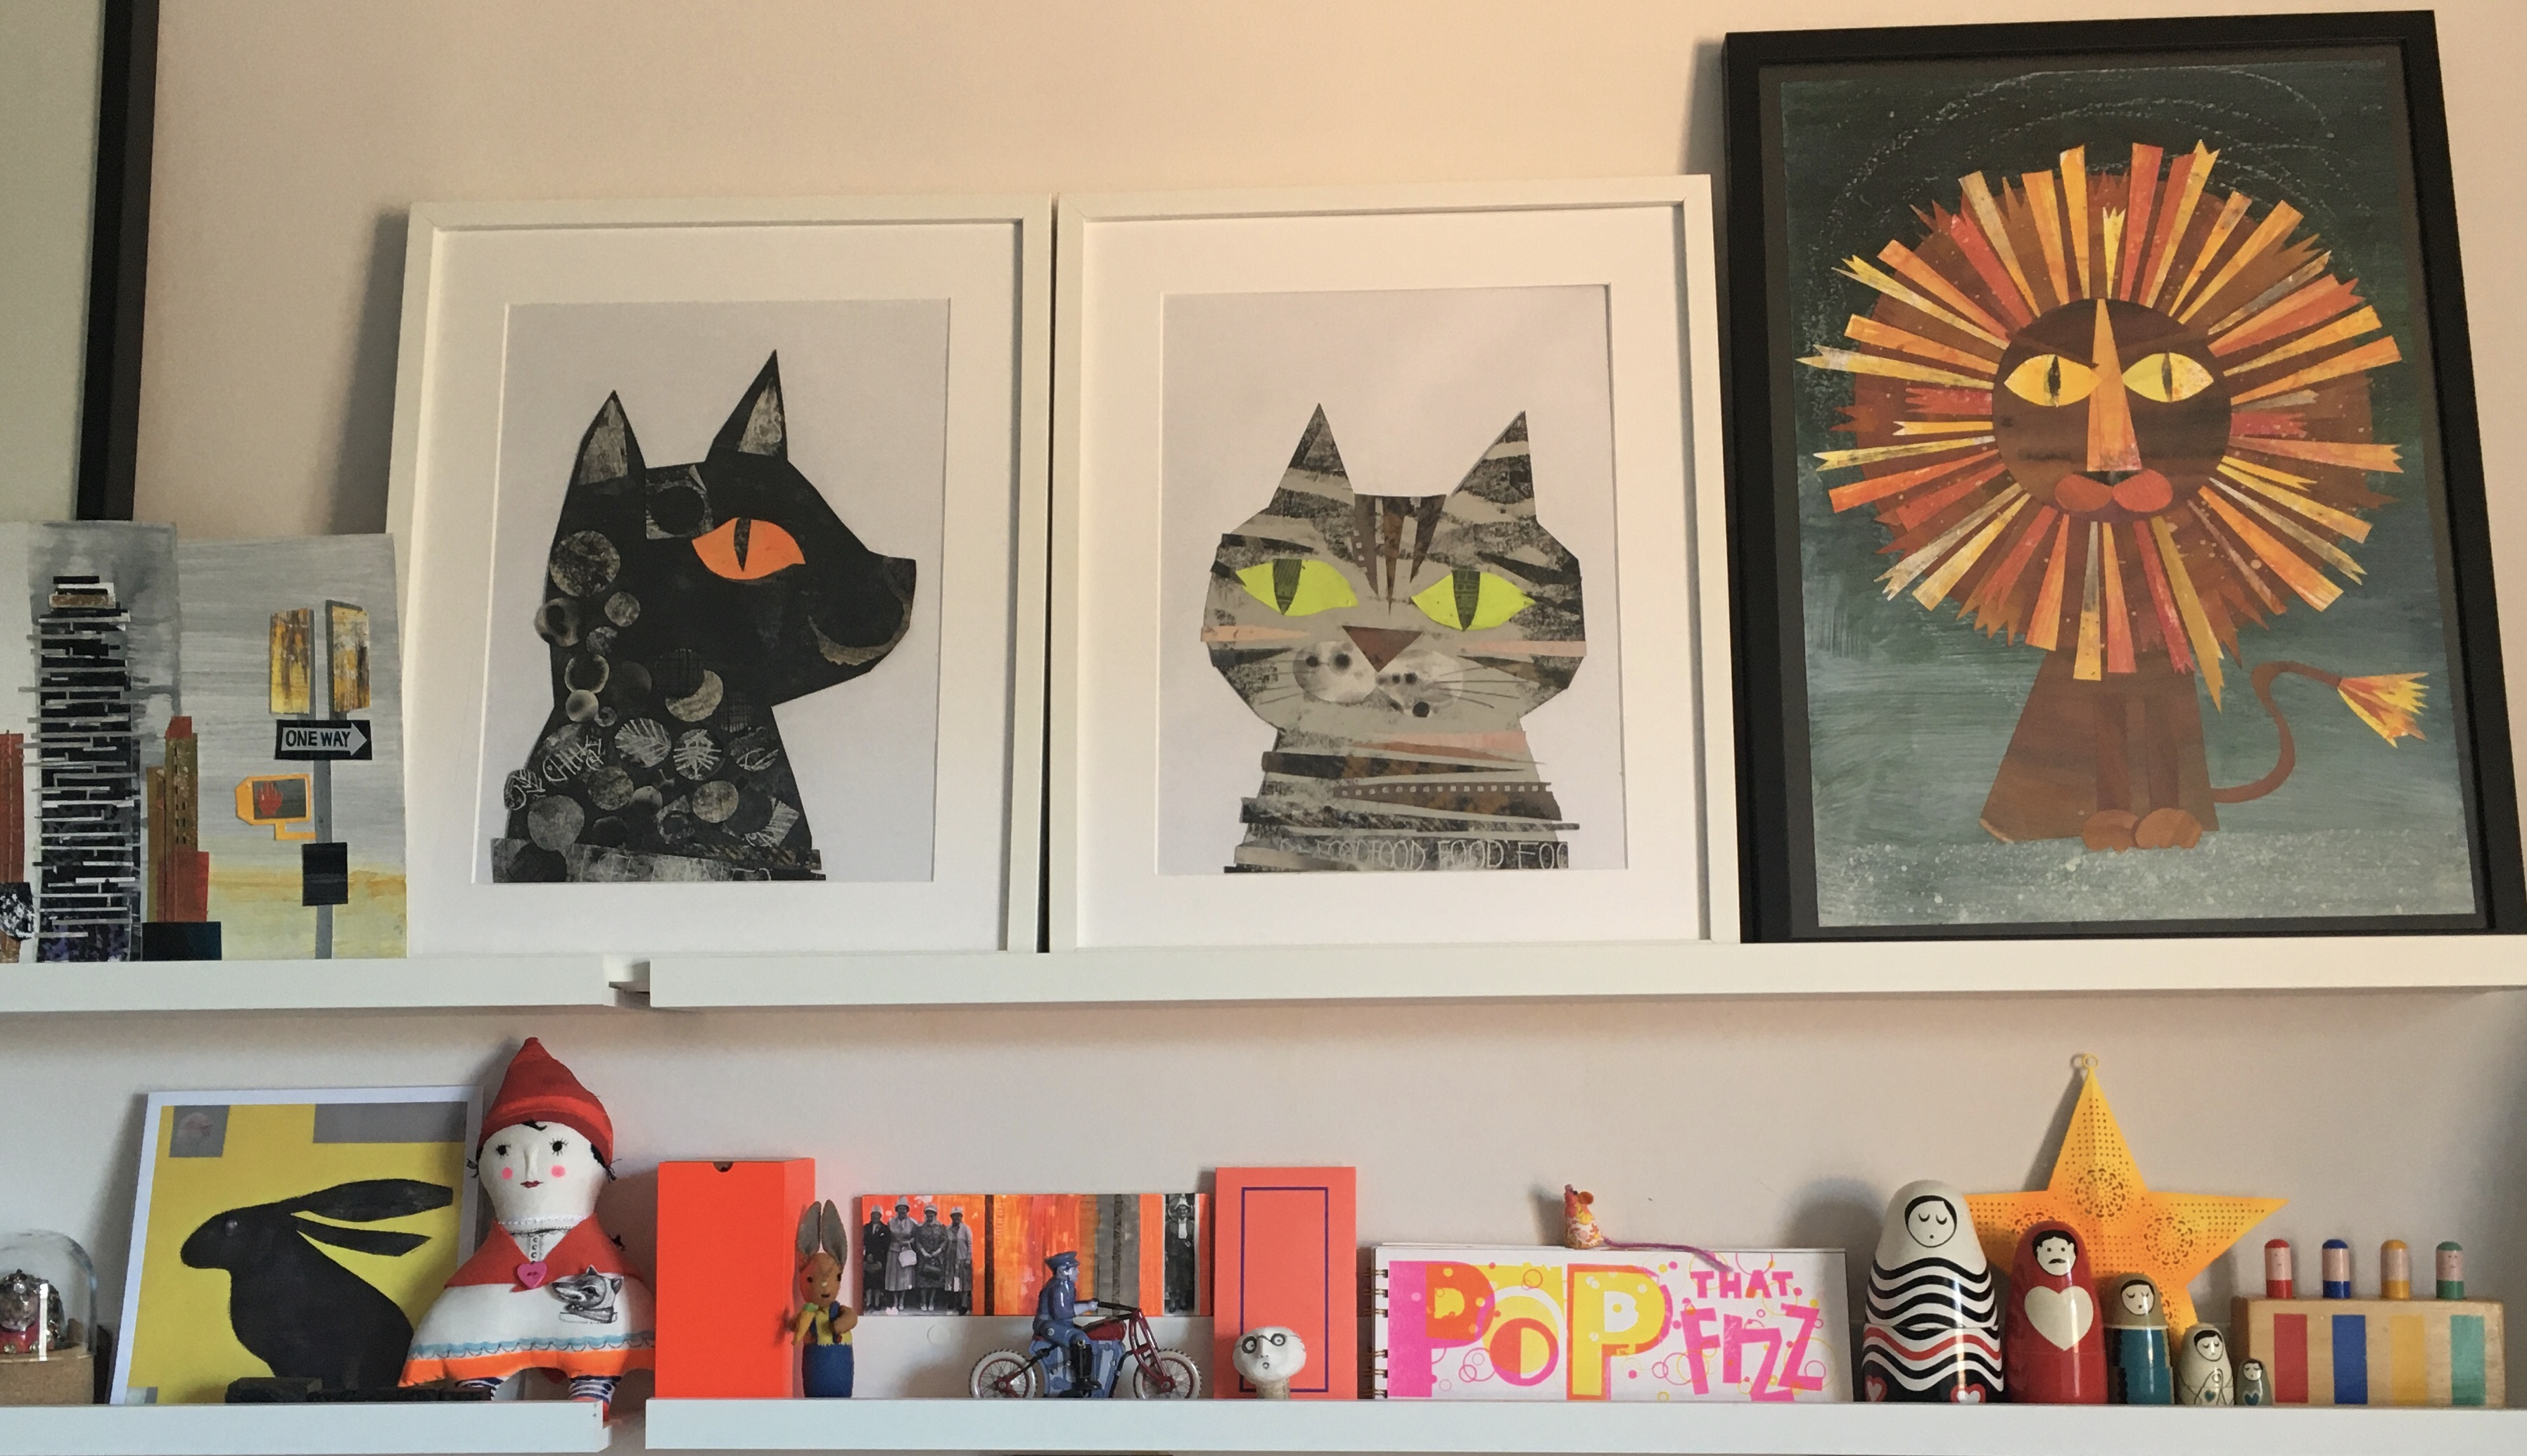 Above: Reggie's new studio wall, which features a mix of Reggie's own collage work, memorabilia and others' splendid work.